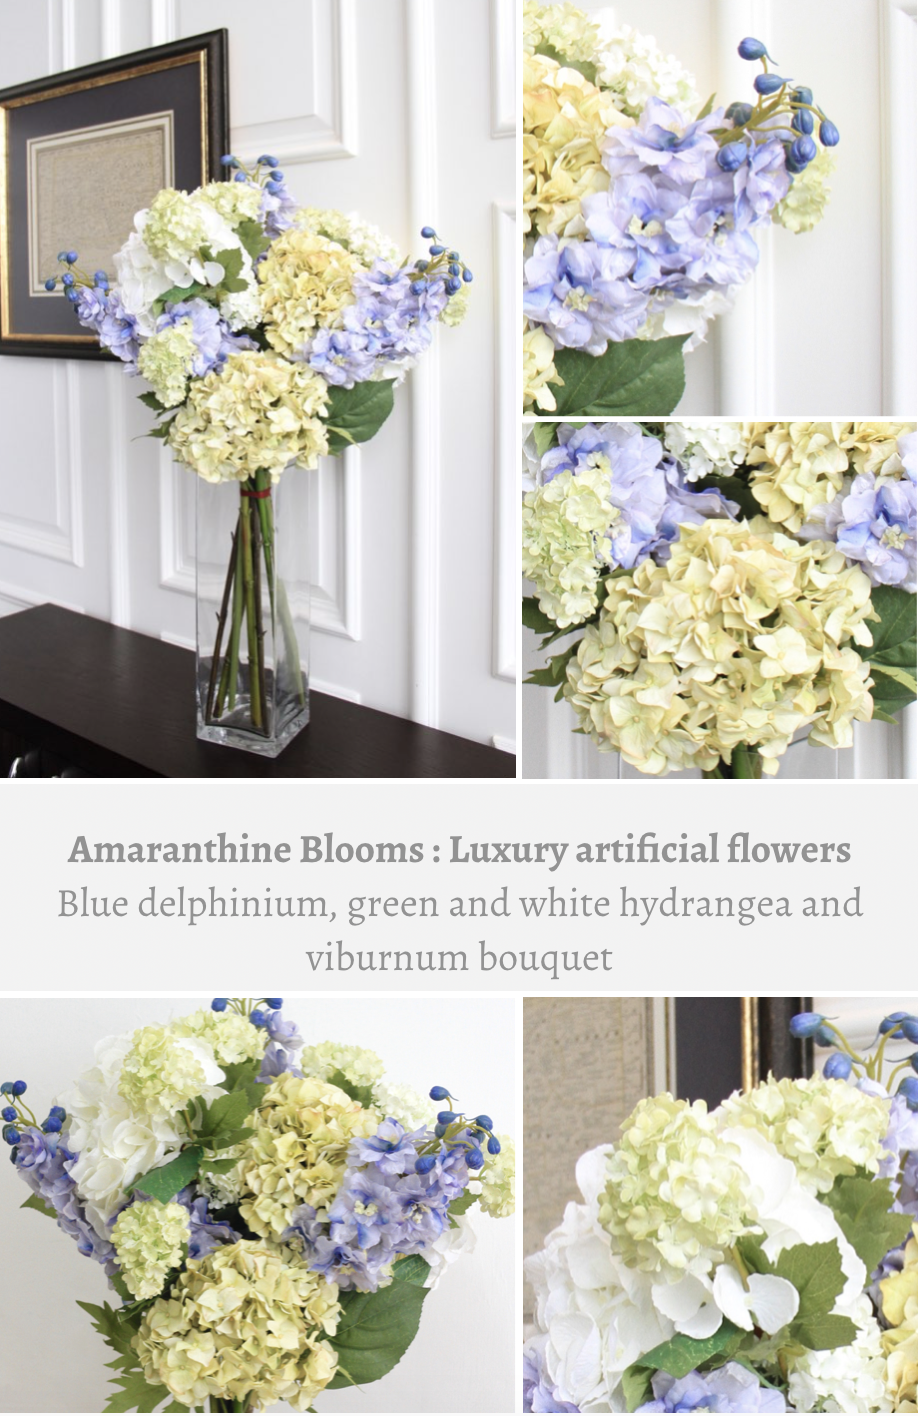 Luxury Artificial Flowers From Amaranthine Blooms Are The Most Realistic Silk Perfectly Imitating Real Thing Tall Blue Delphiniums Green And